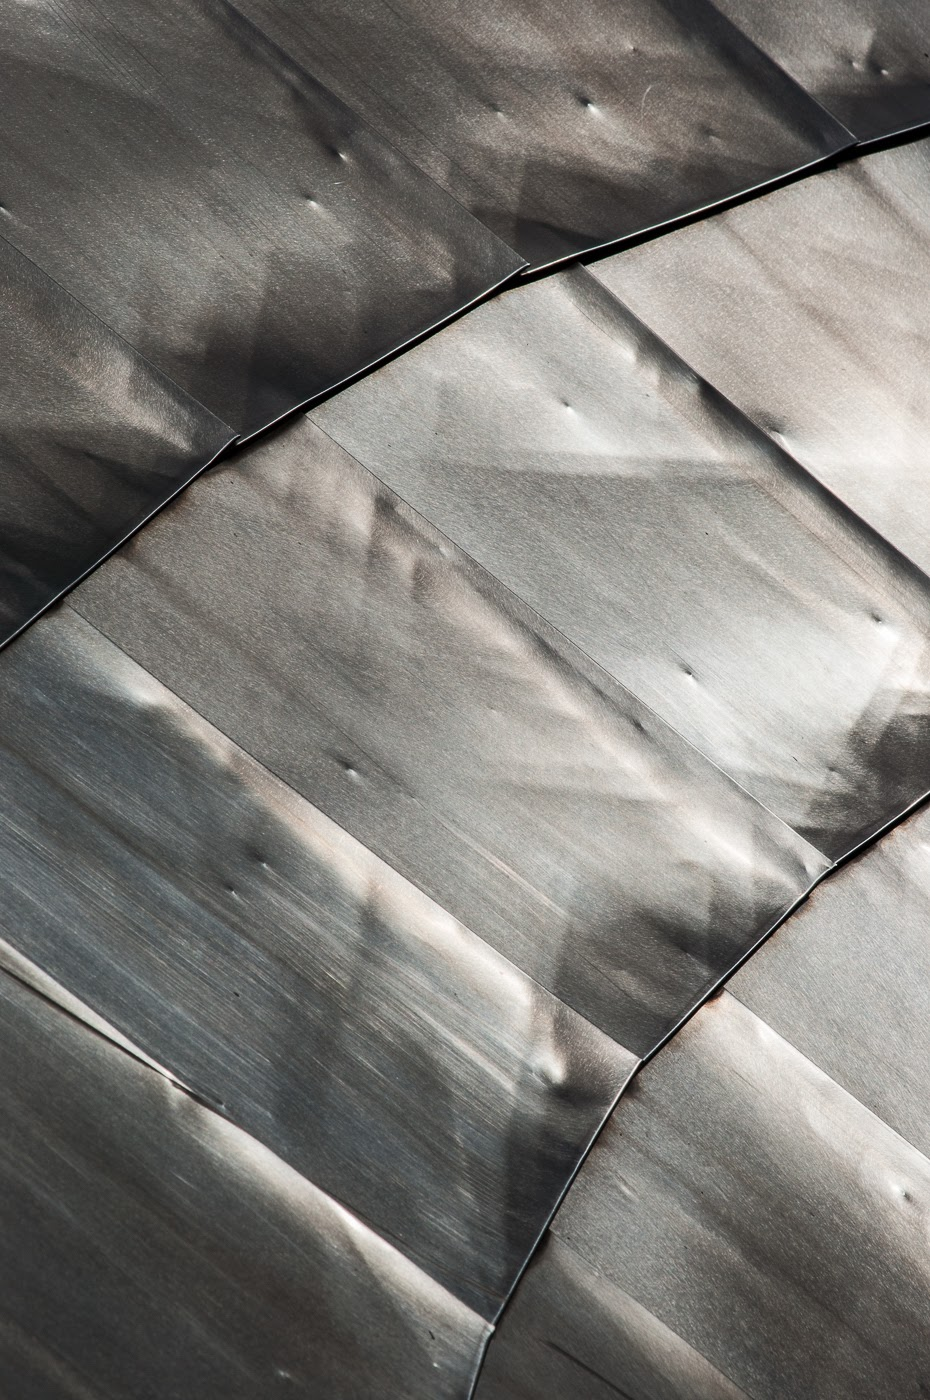 Frank gehry, abstract, abstractional, abstraction, bridge, bp pedestrian bridge, Chicago, stainless steel, gehry, detail, façade, architect, architecture, architectural, structure, columbus drive, graphic